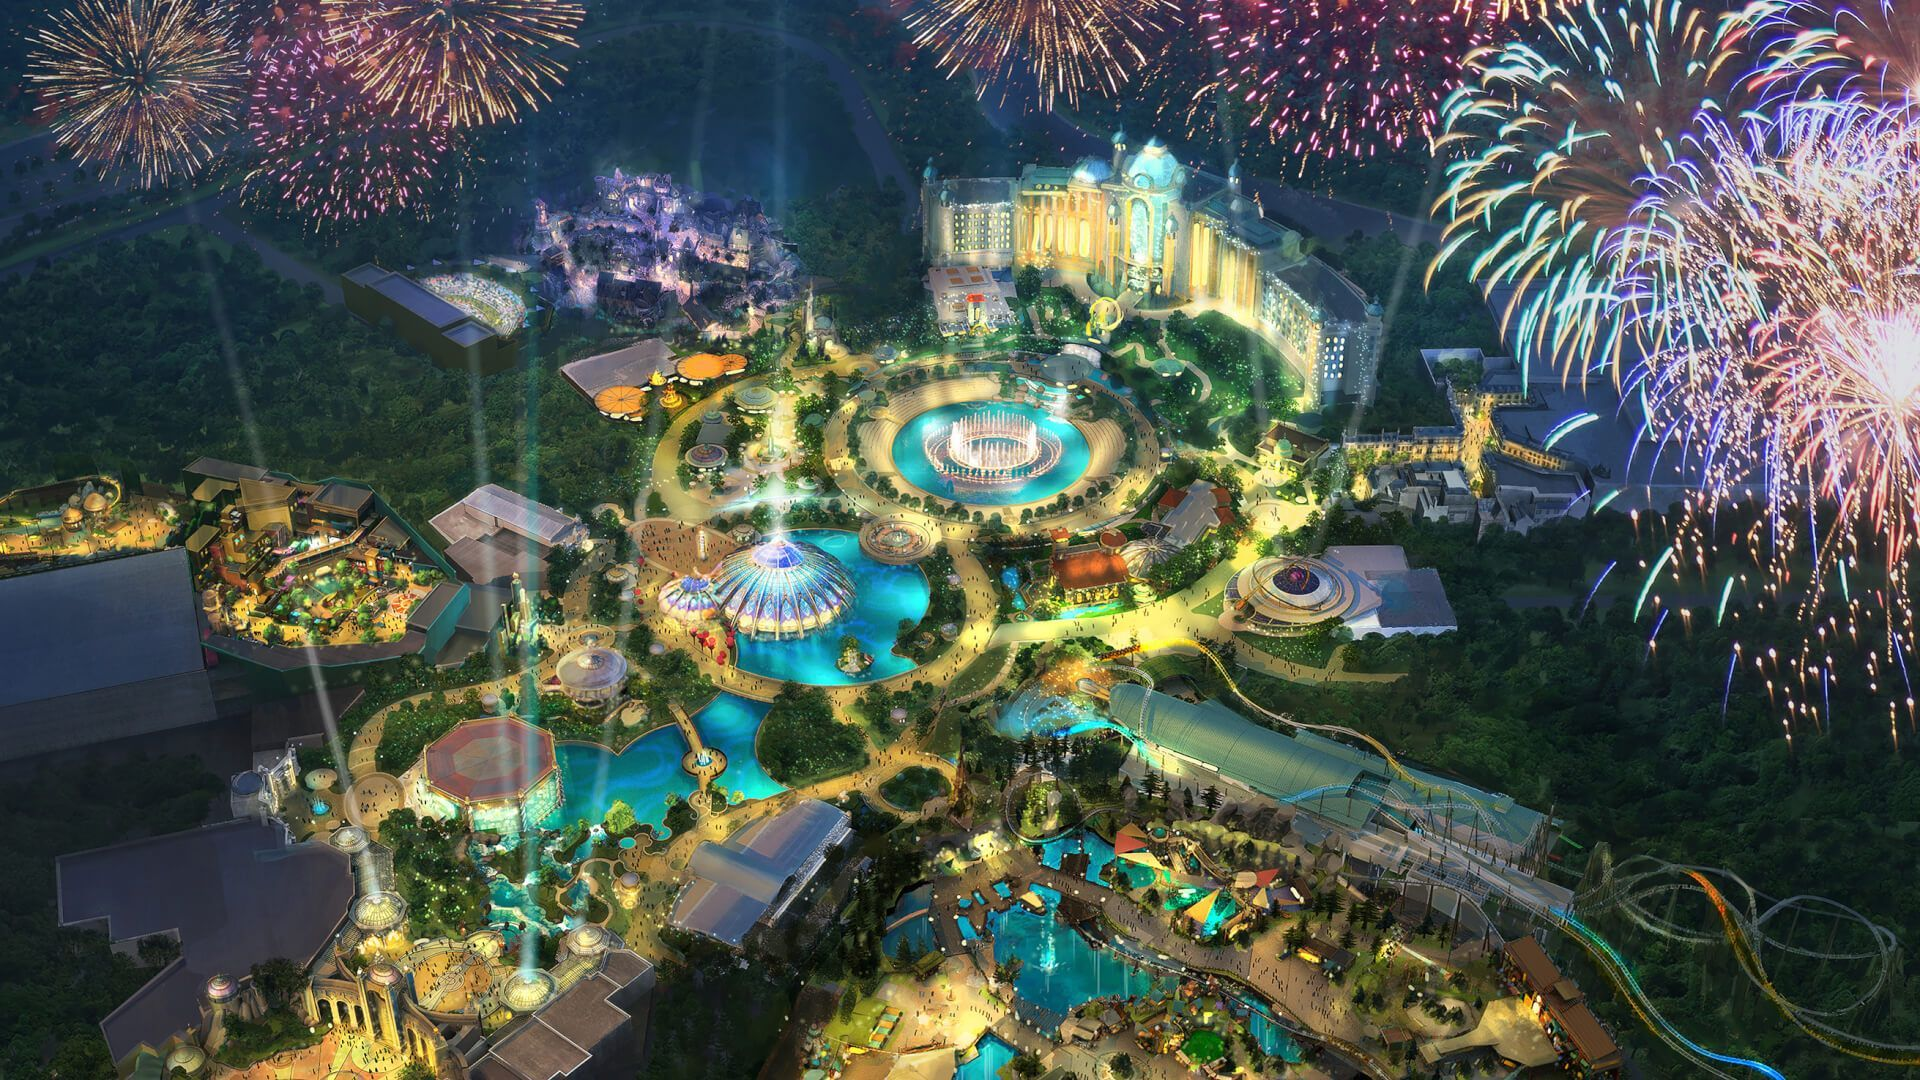 Universal Orlando Announces Opening Date For Epic New Theme Park